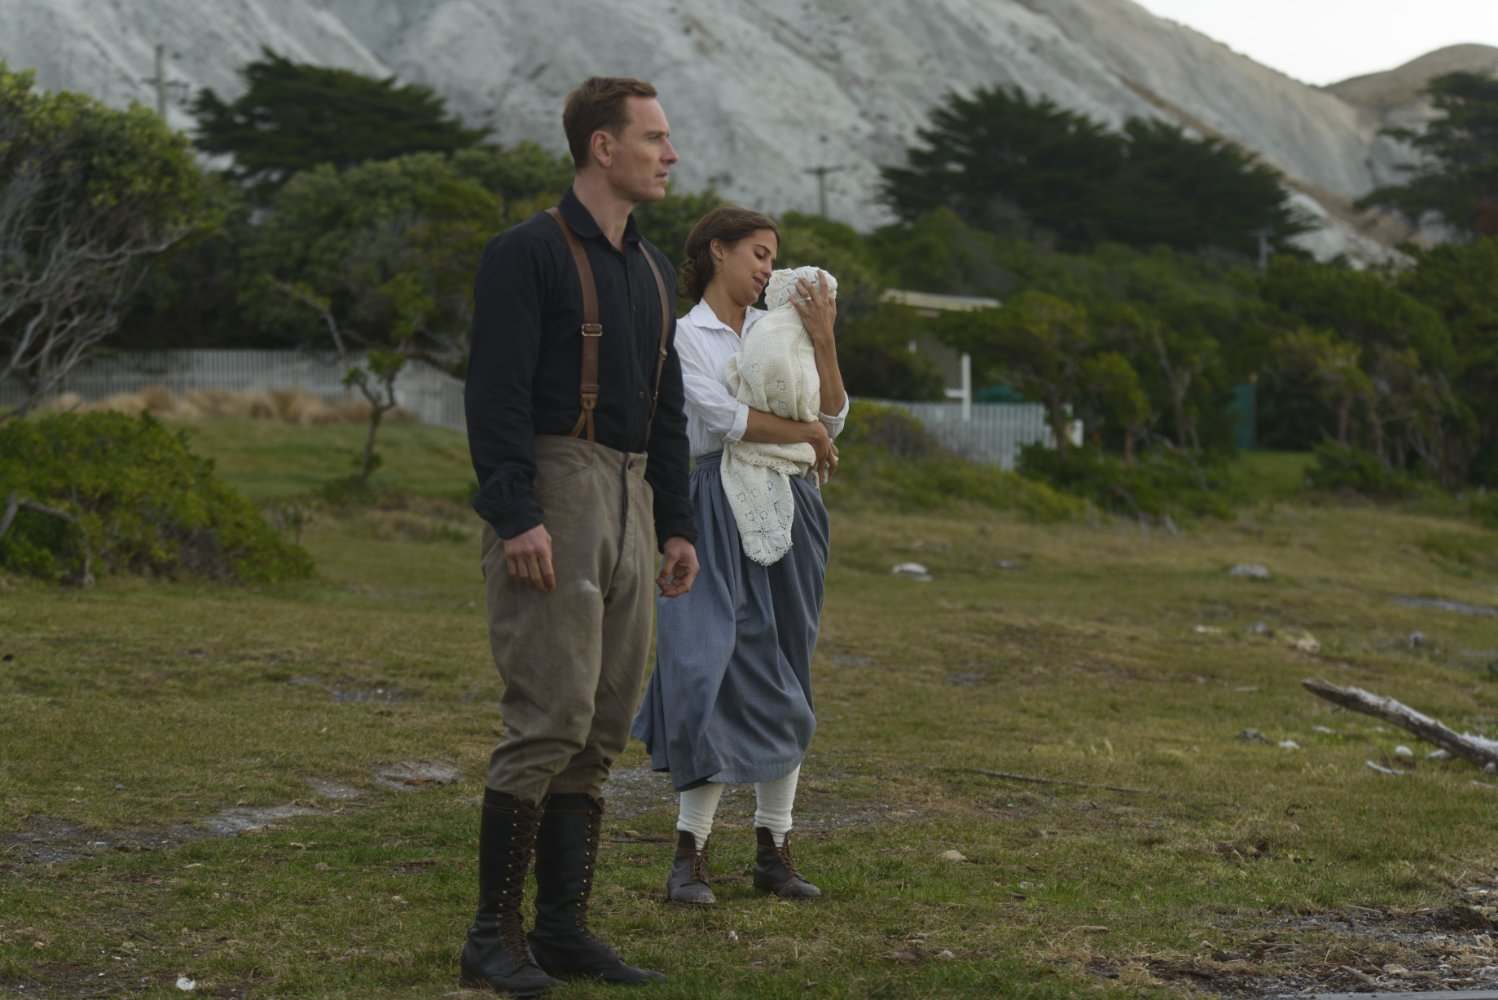 Alicia Vikander may look content but Michael Fassbender sees trouble on the horizon.